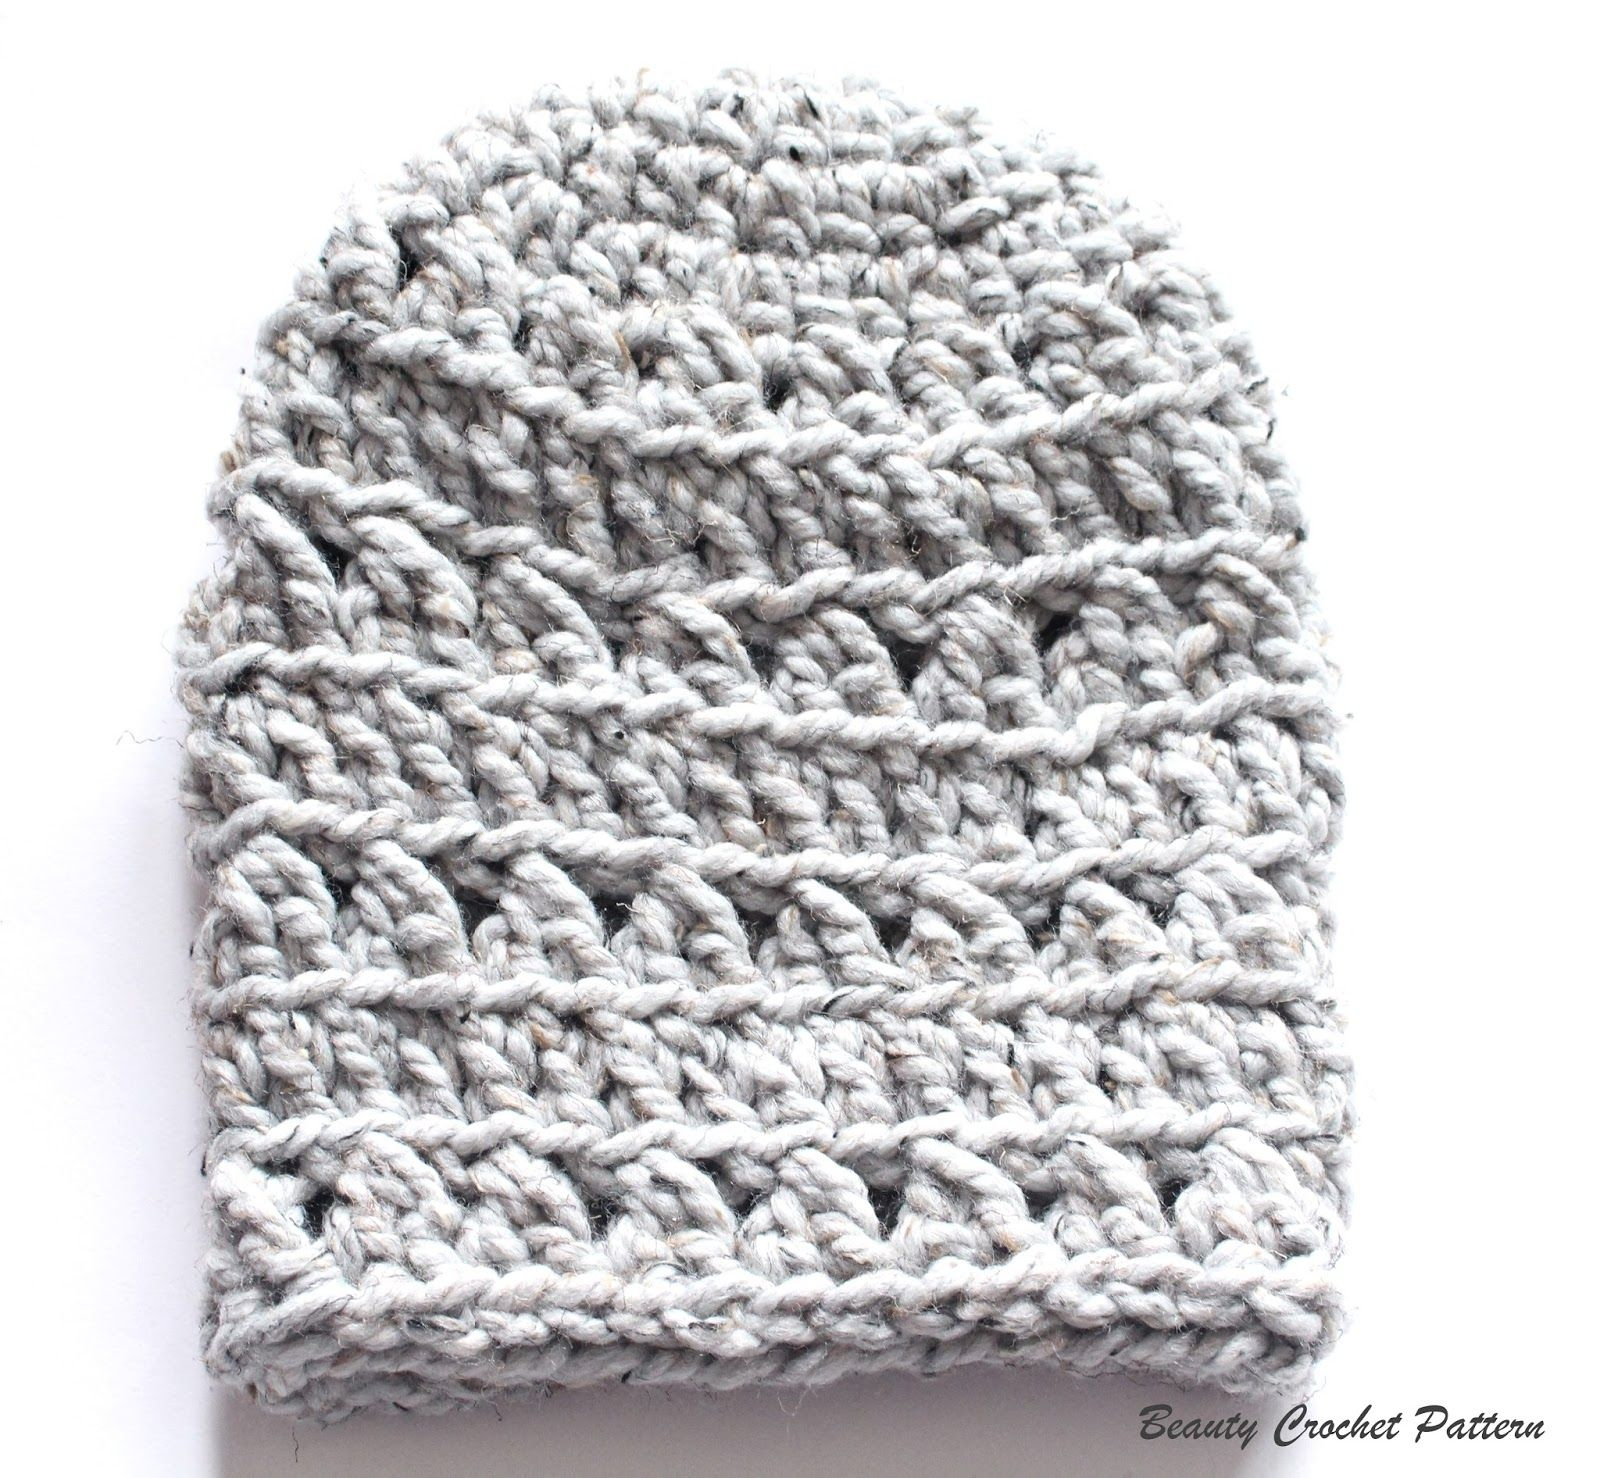 Traditionally in December I post a free pattern which is easy to ...